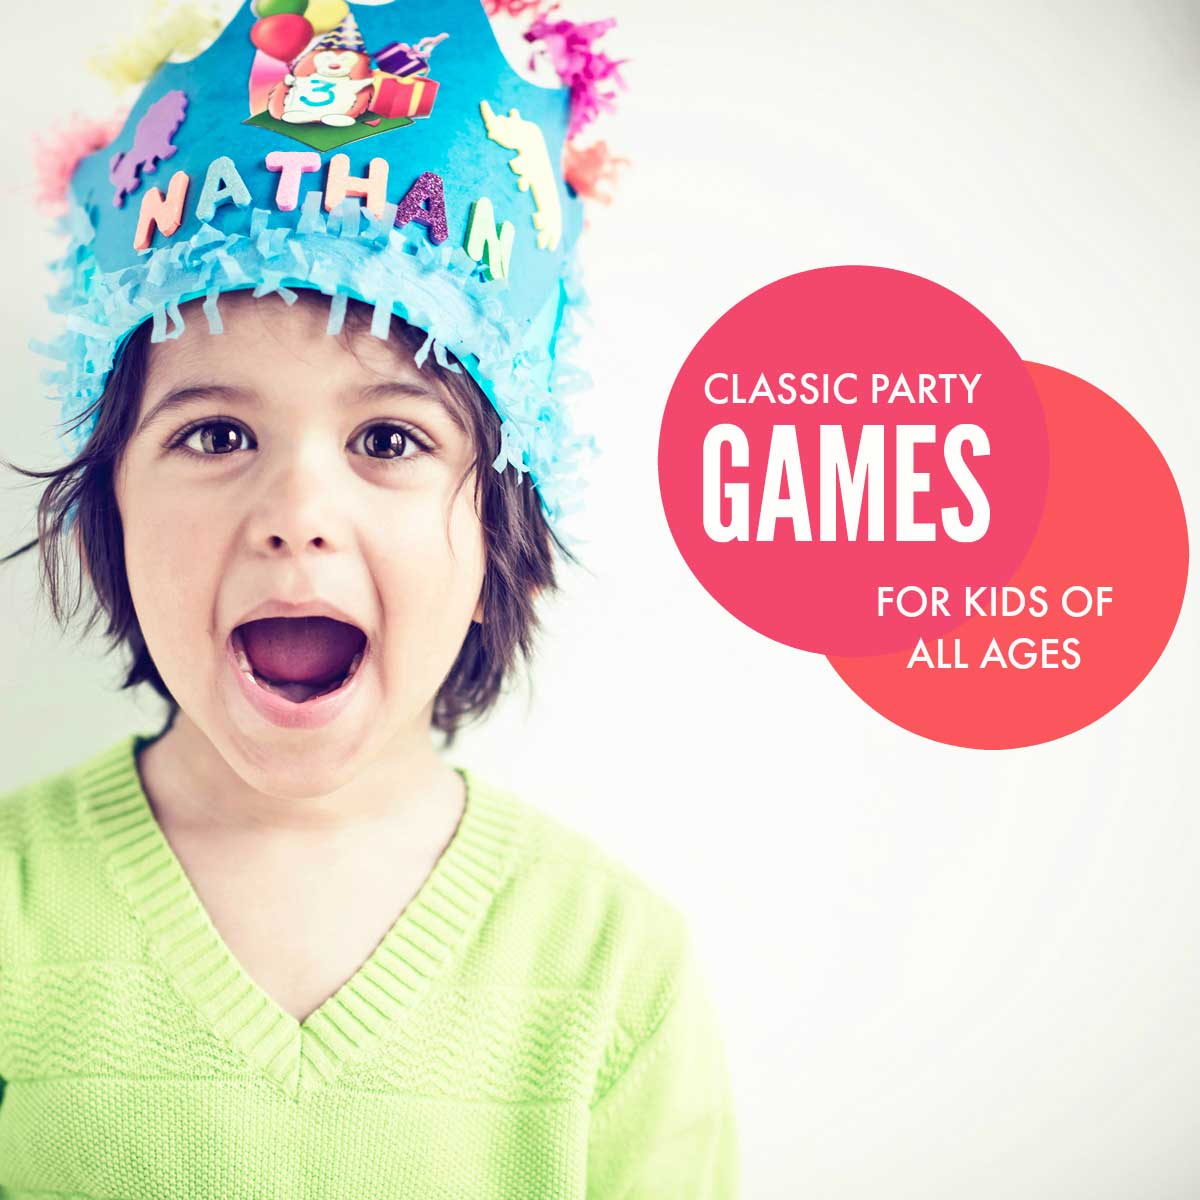 Classic children's party games